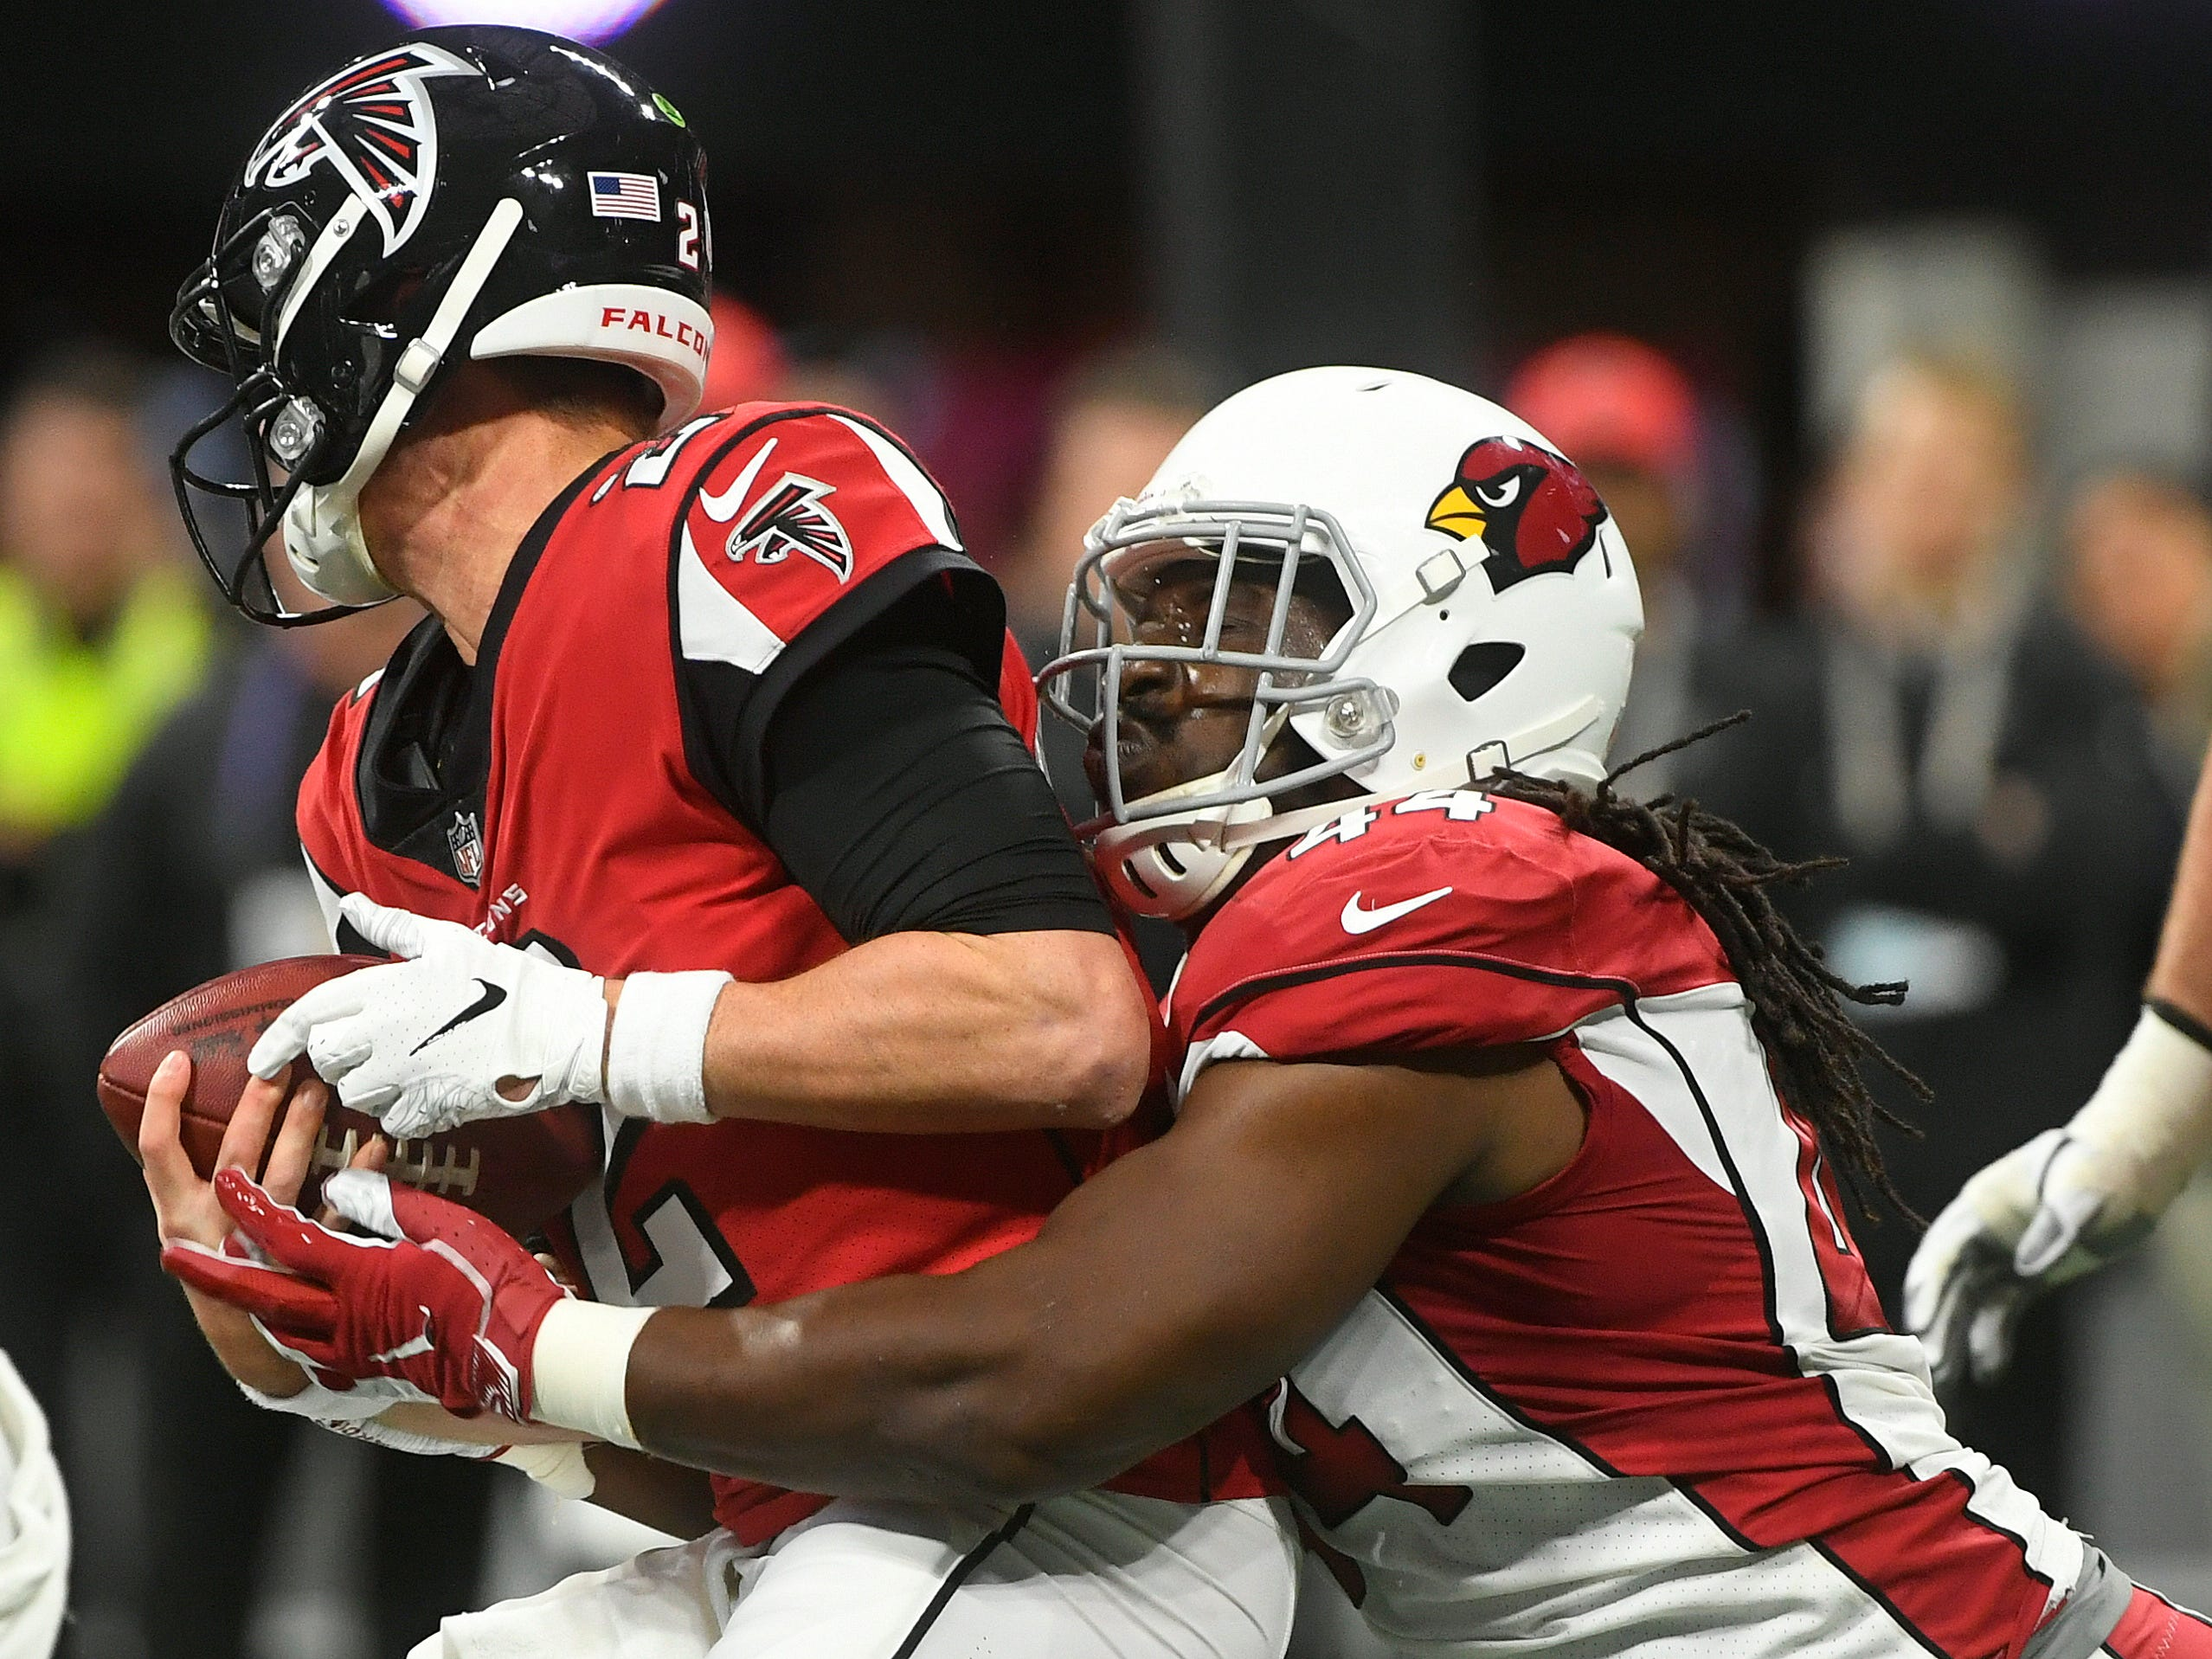 Arizona Cardinals defensive end Markus Golden (44) sacks Atlanta Falcons quarterback Matt Ryan (2) during the first half of an NFL football game, Sunday, Dec. 16, 2018, in Atlanta.